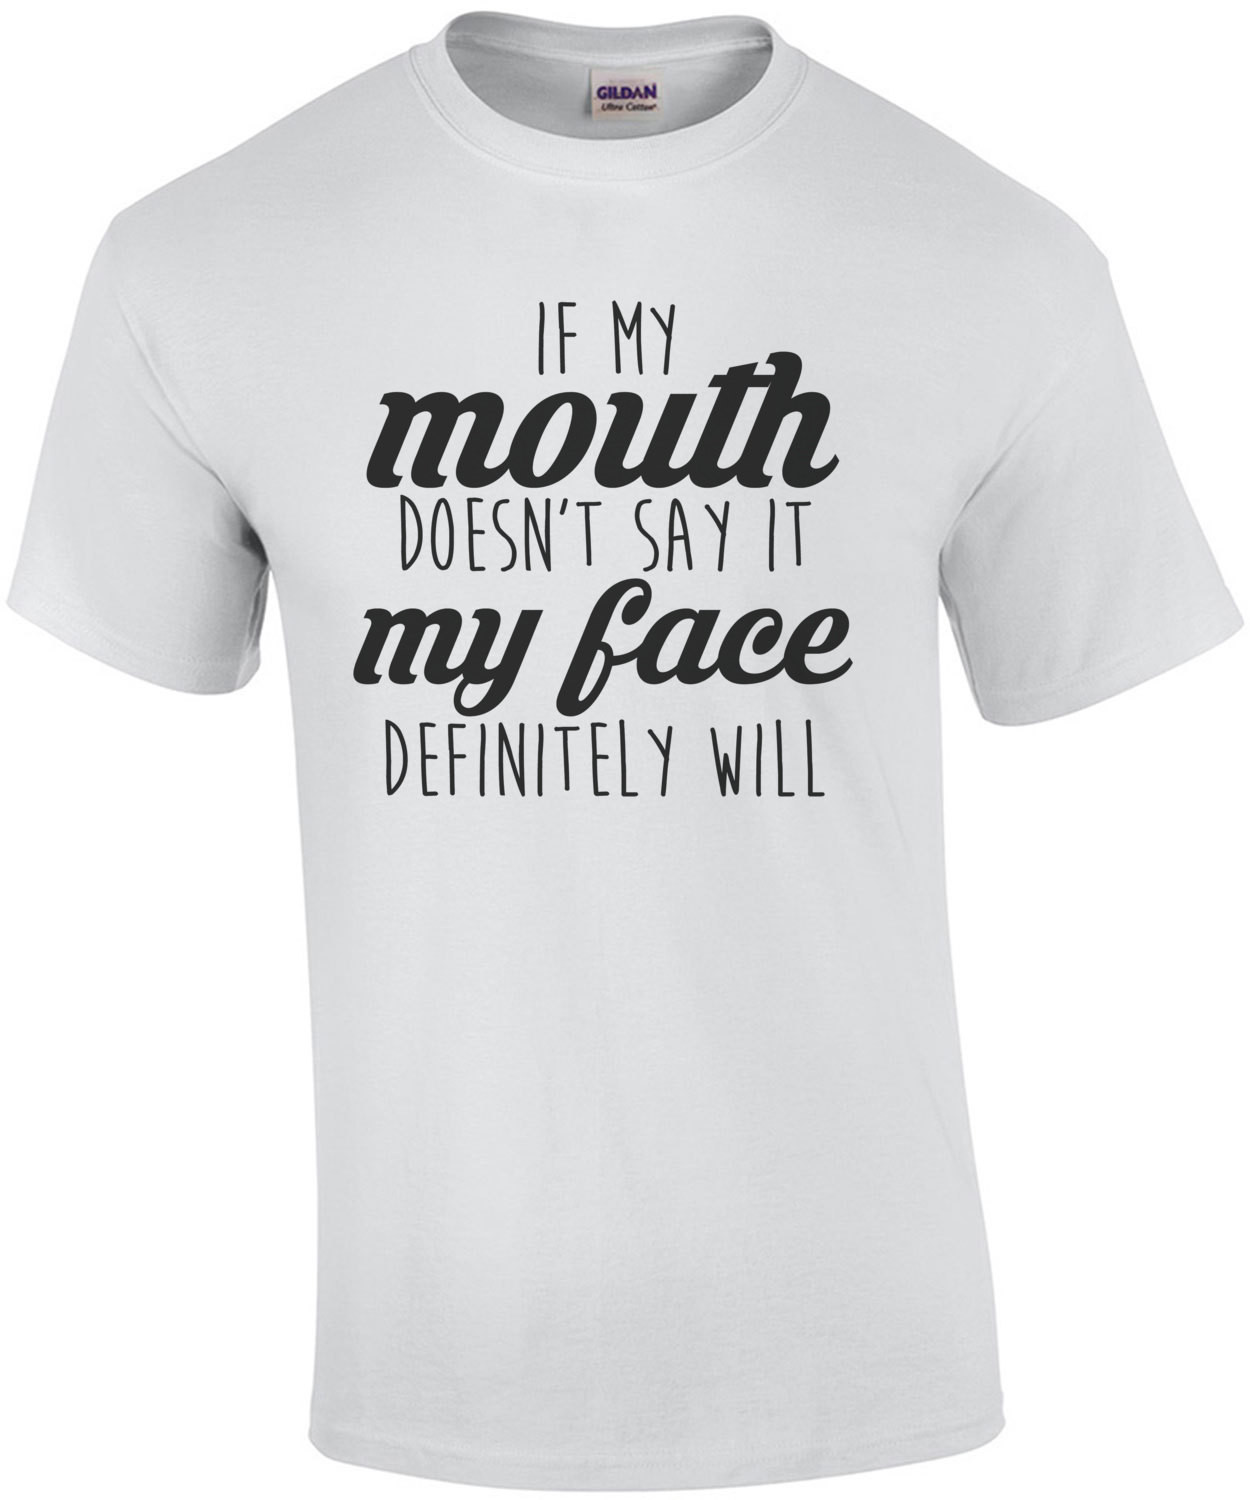 If my mouth doesn't say it my face definitely will - funny t-shirt